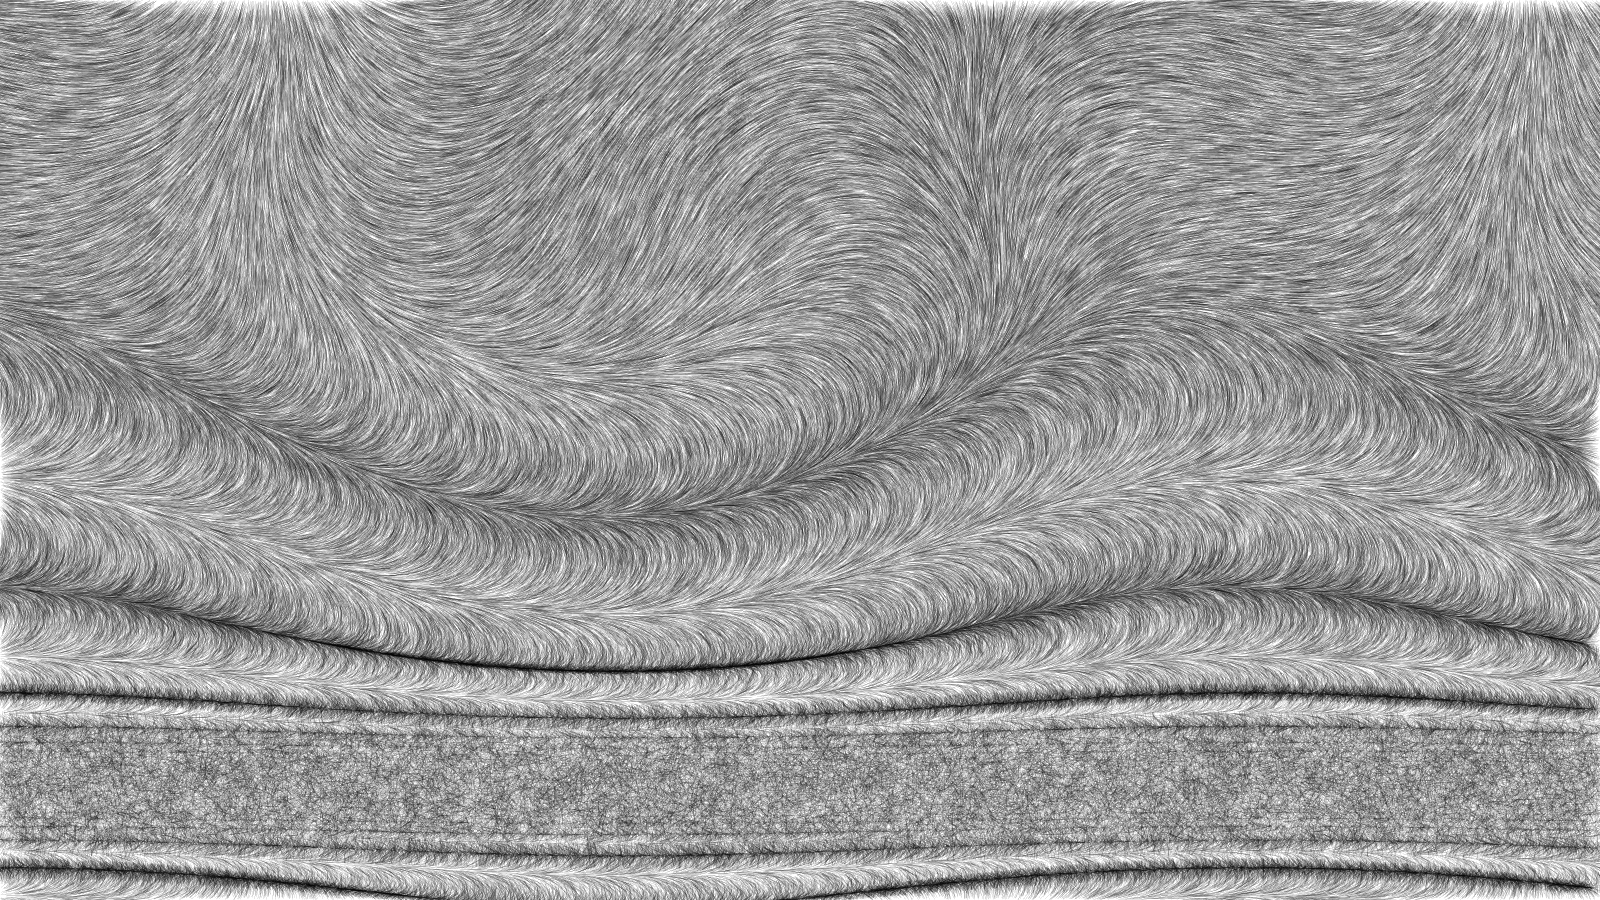 Drawn fur From page canvas Code Category